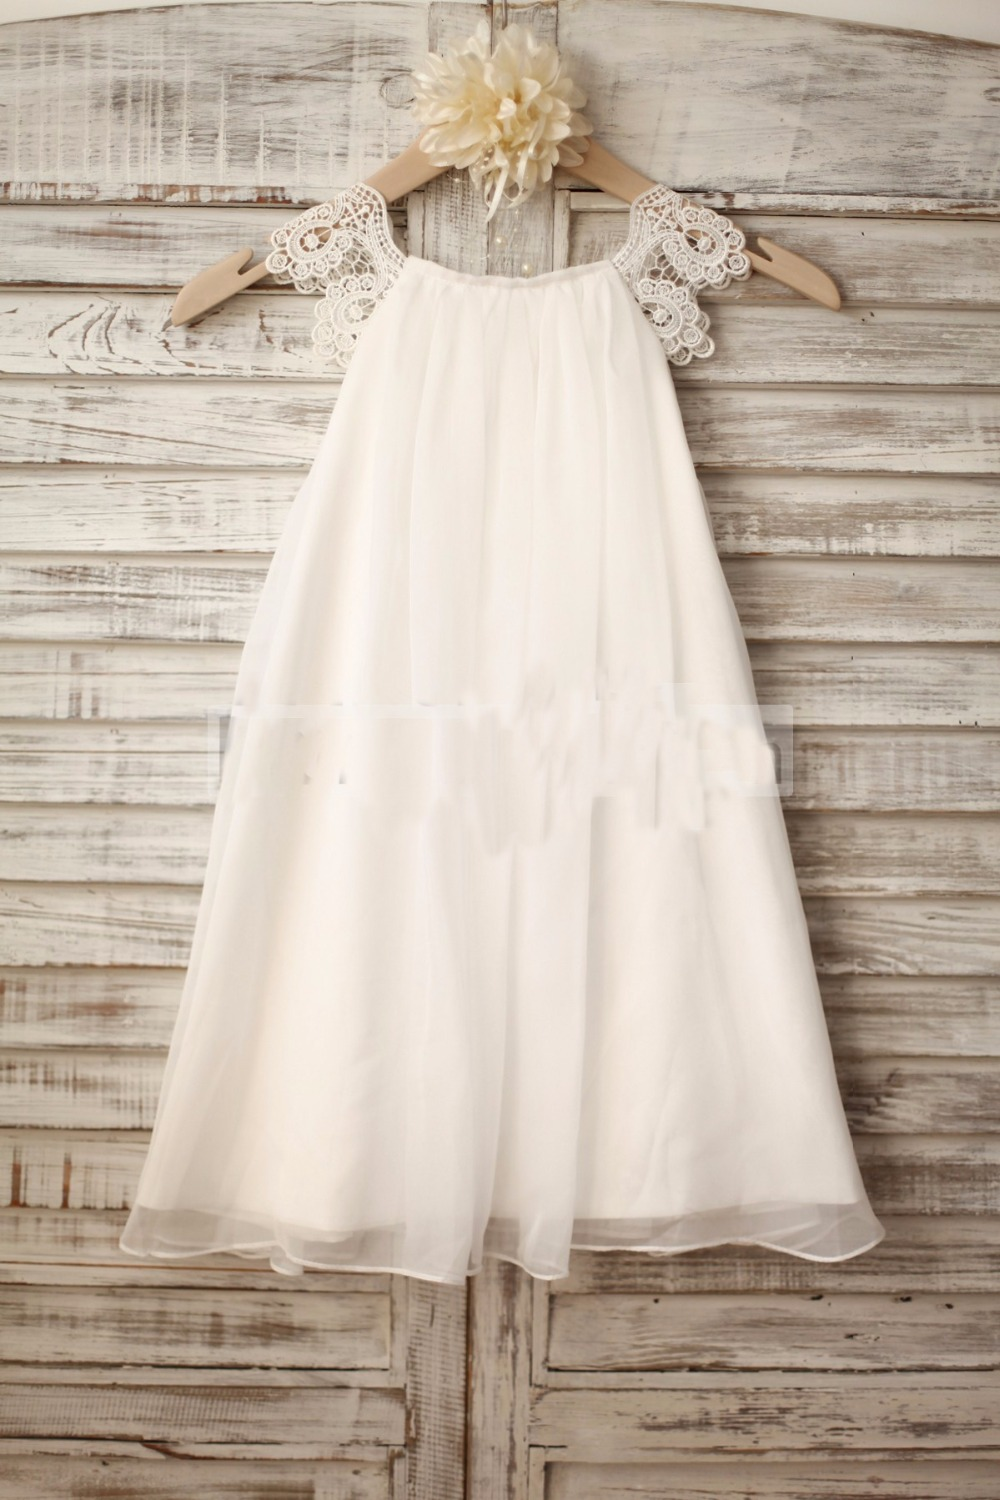 New Arrival A-Line Beach Chiffon   Flower     Girl     Dresses   For Weddings 2019 First Communion   Dresses   Pageant Gown